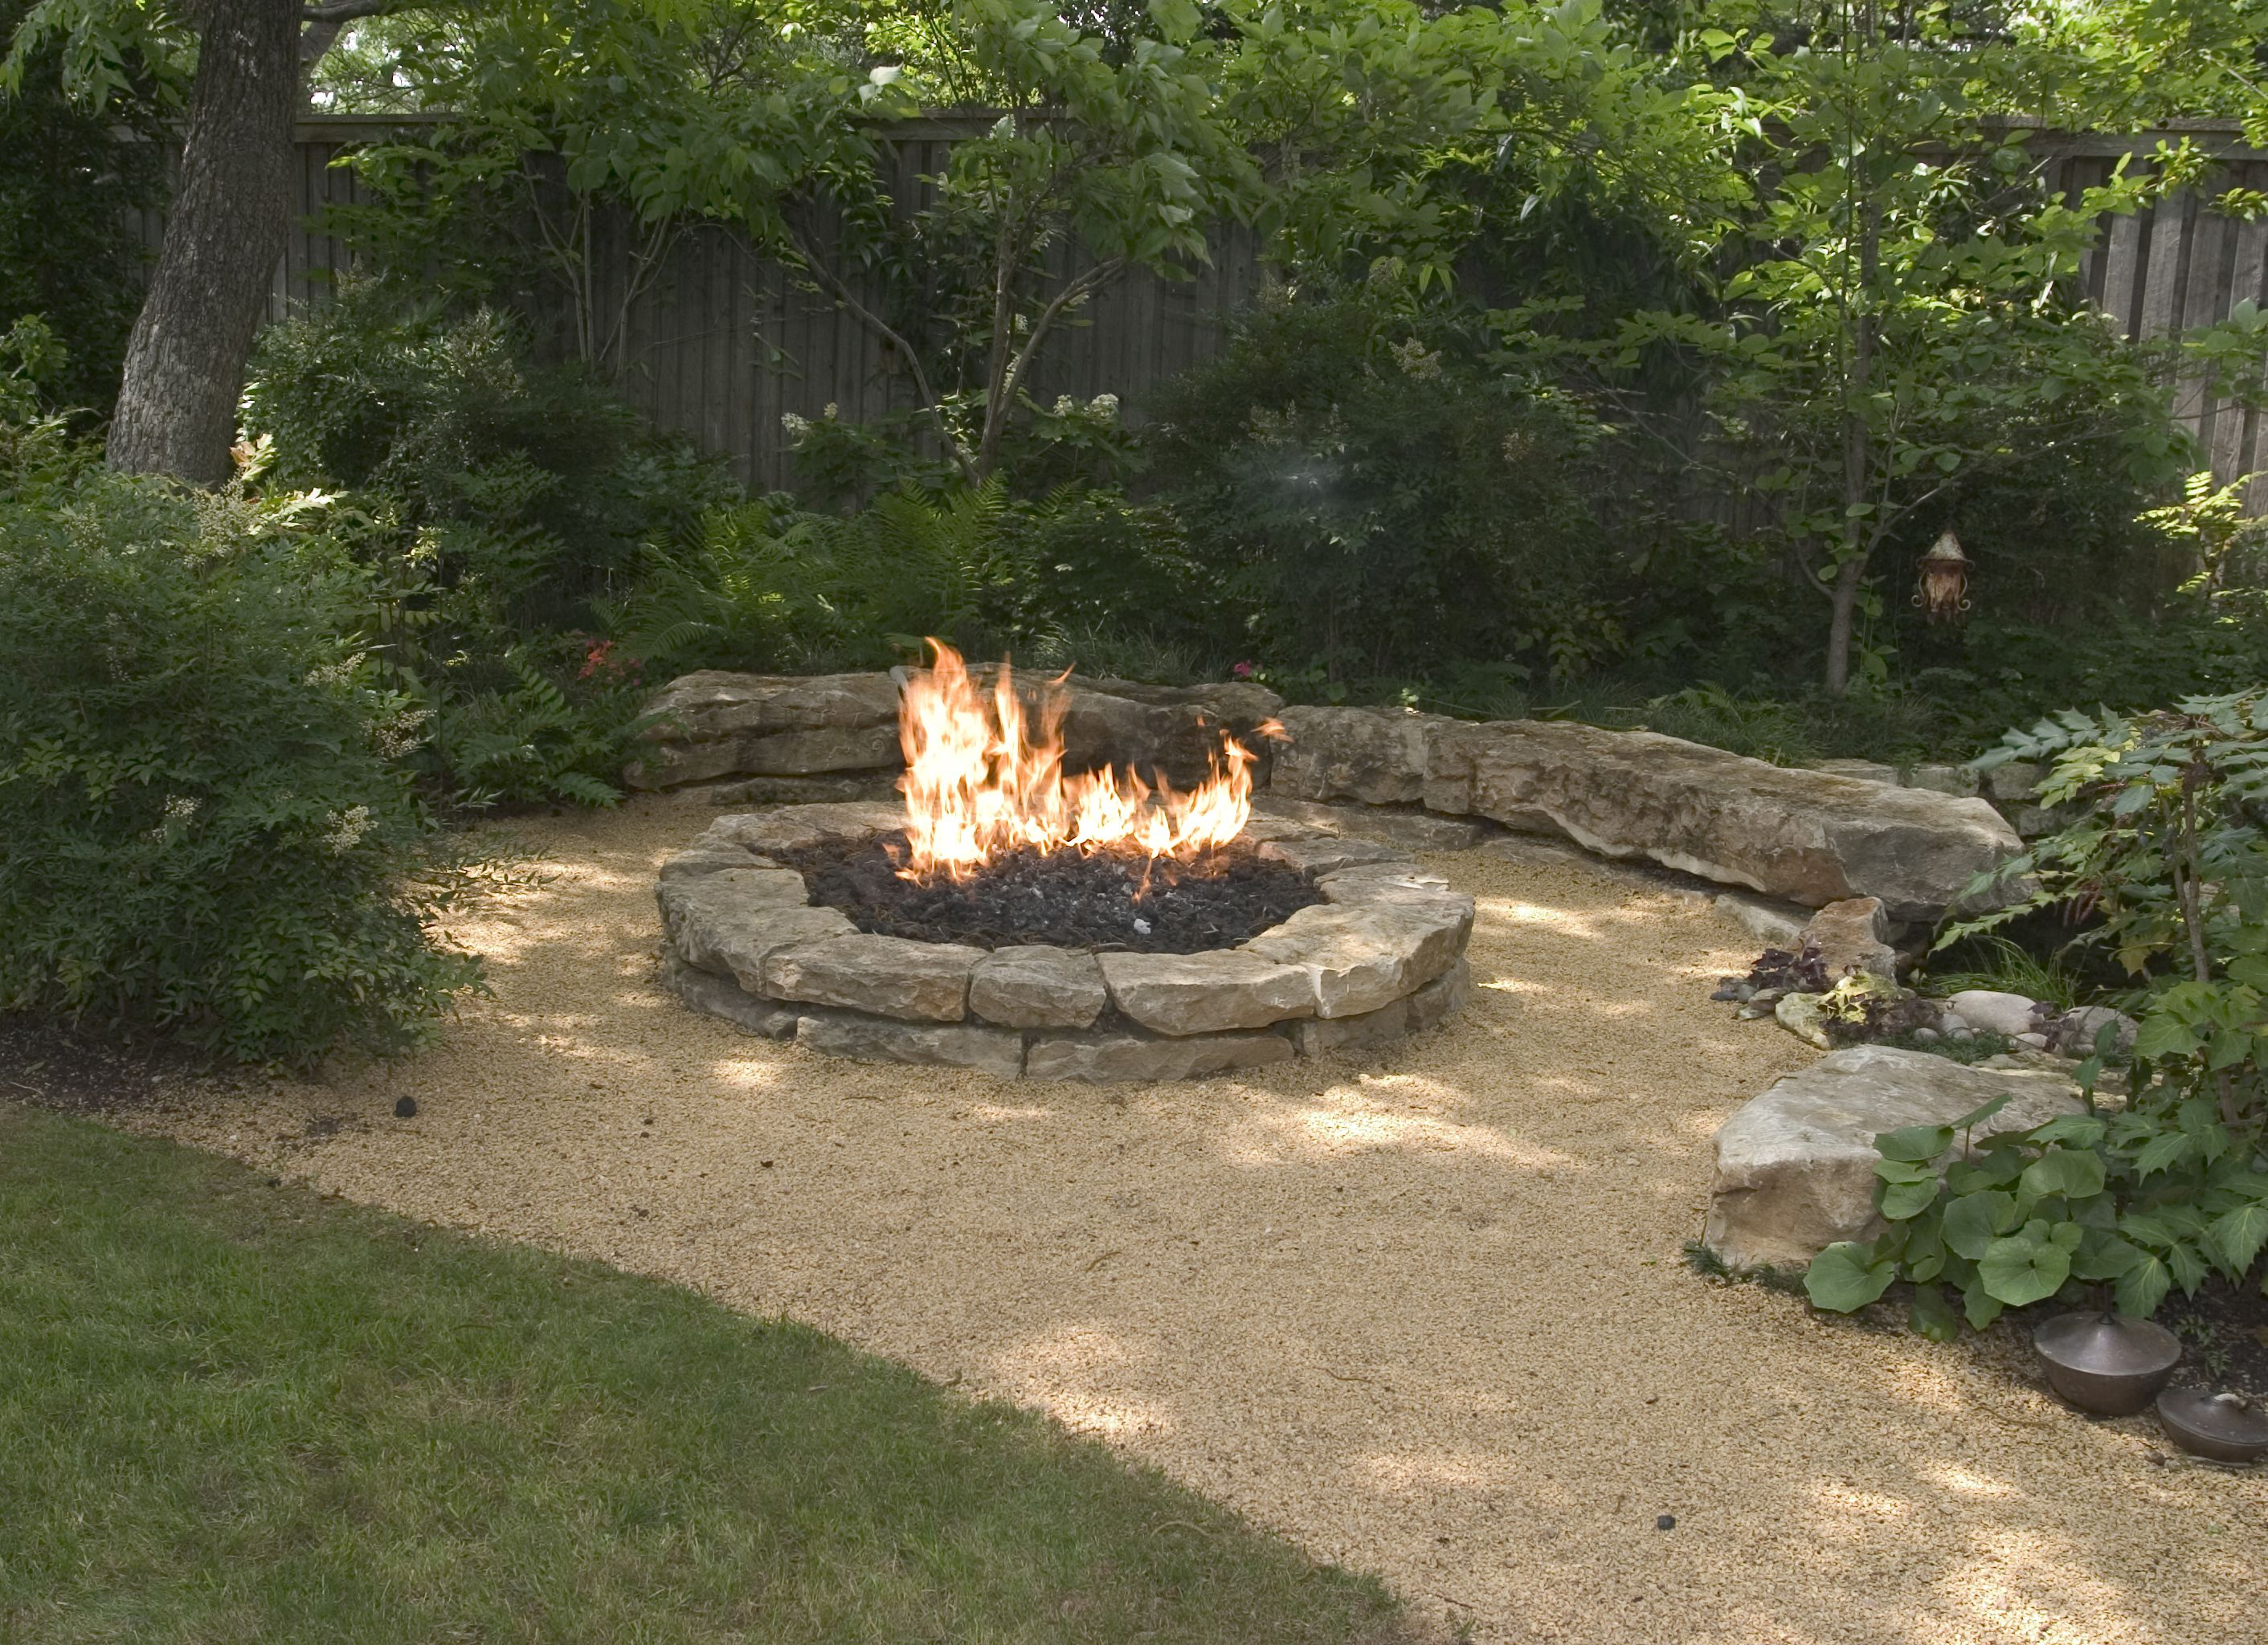 Epic Backyard Landscaping Ideas-Attractive Fire Pit Designs | Pinterest within Backyard Landscaping Ideas With Fire Pit